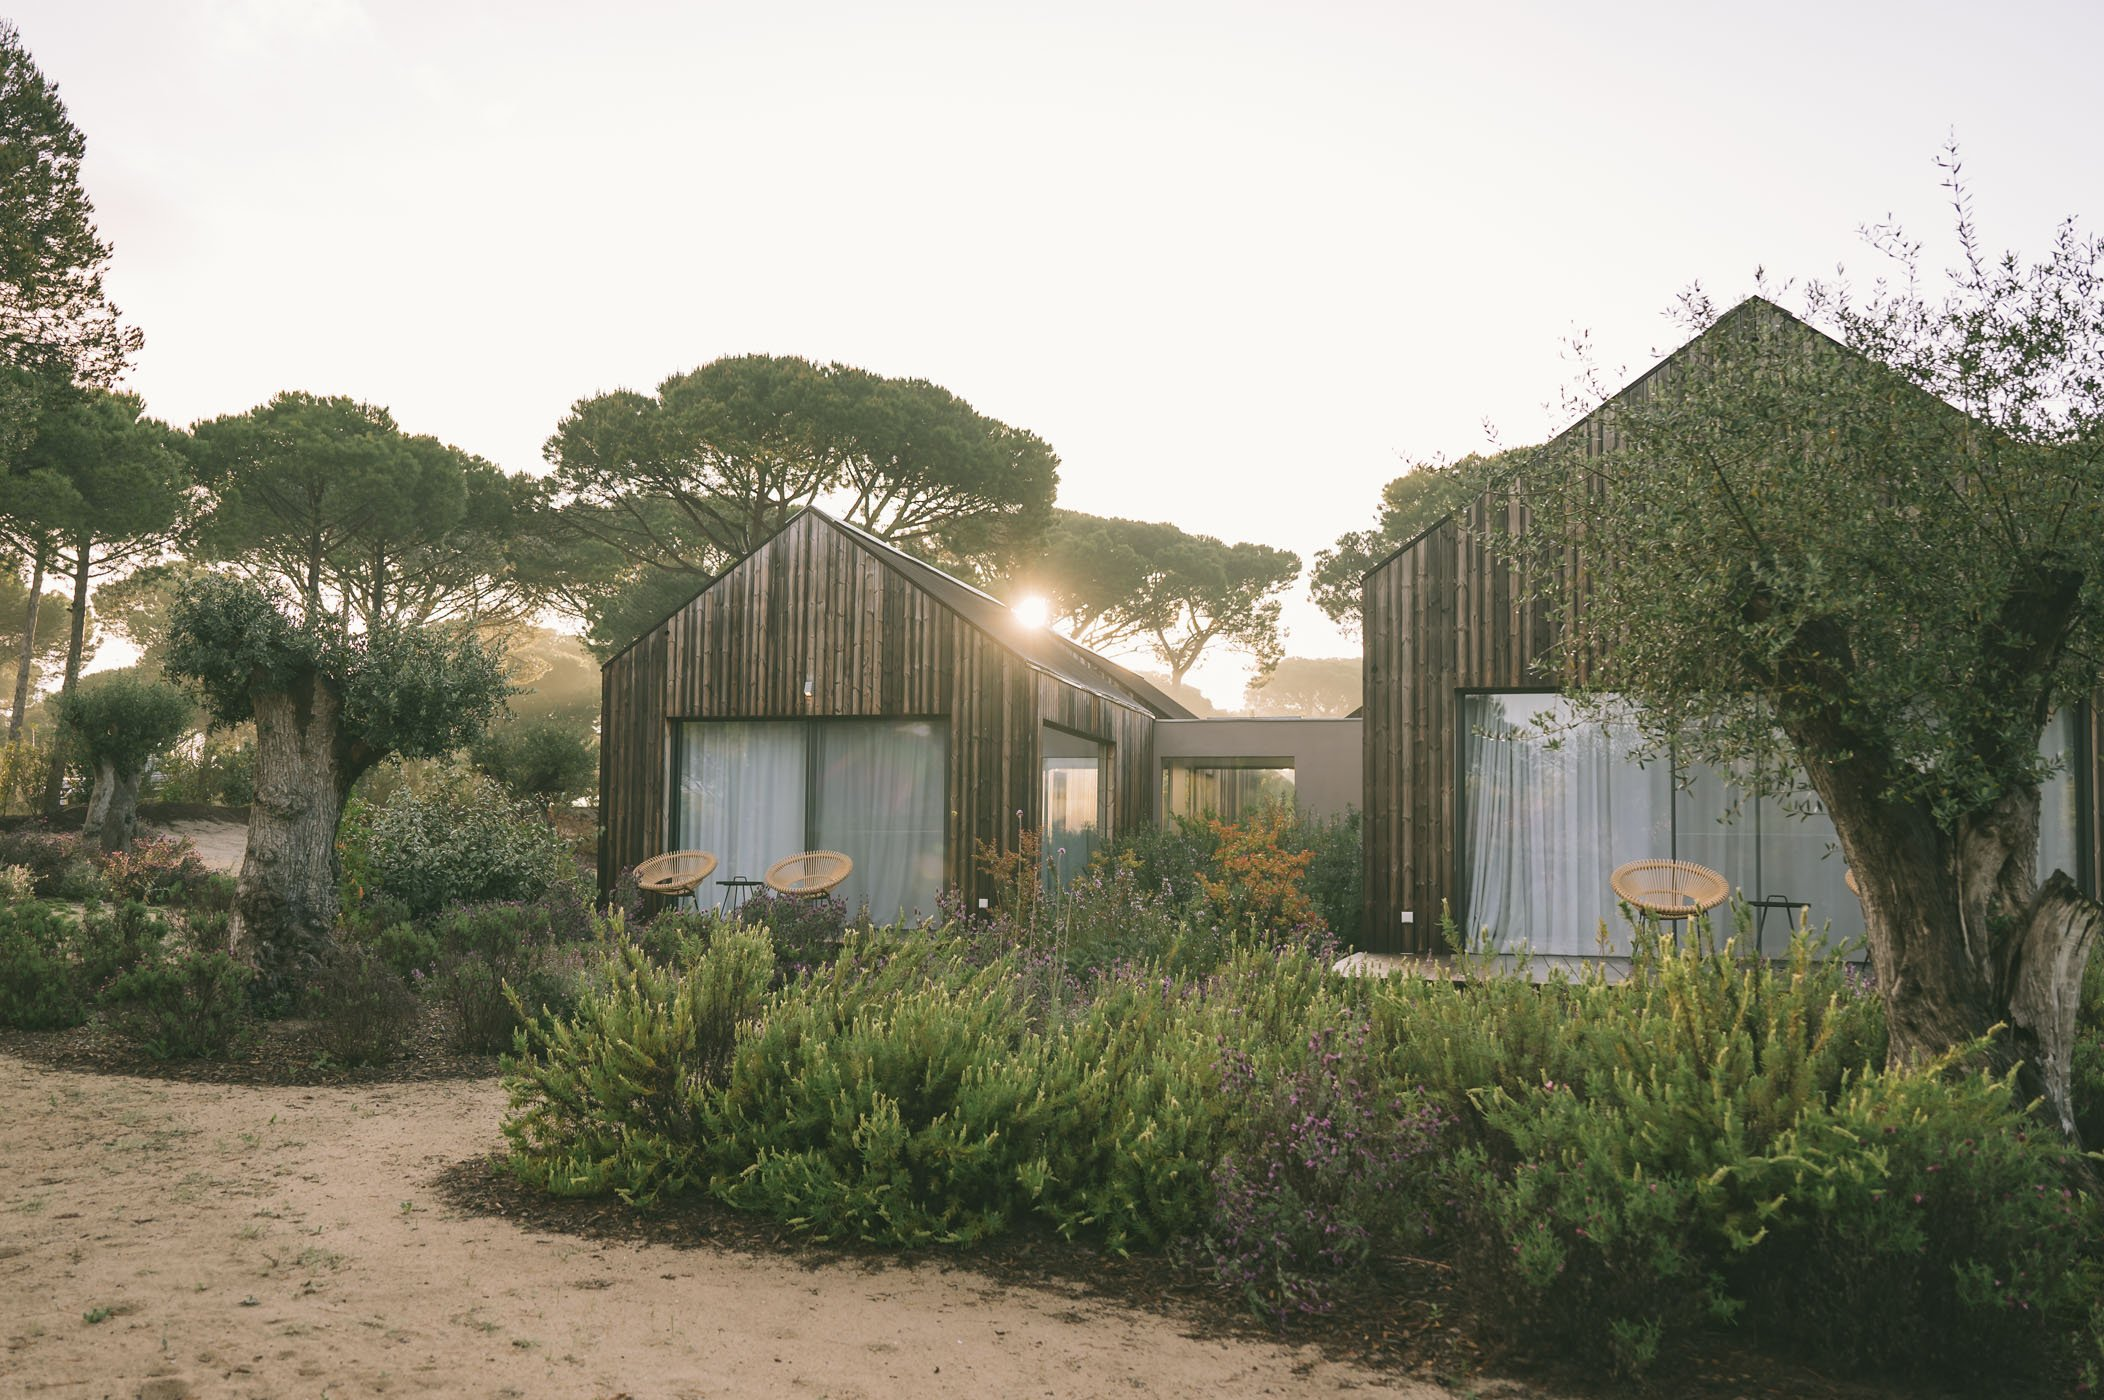 Sublime Comporta - cabana villas in the pine forest